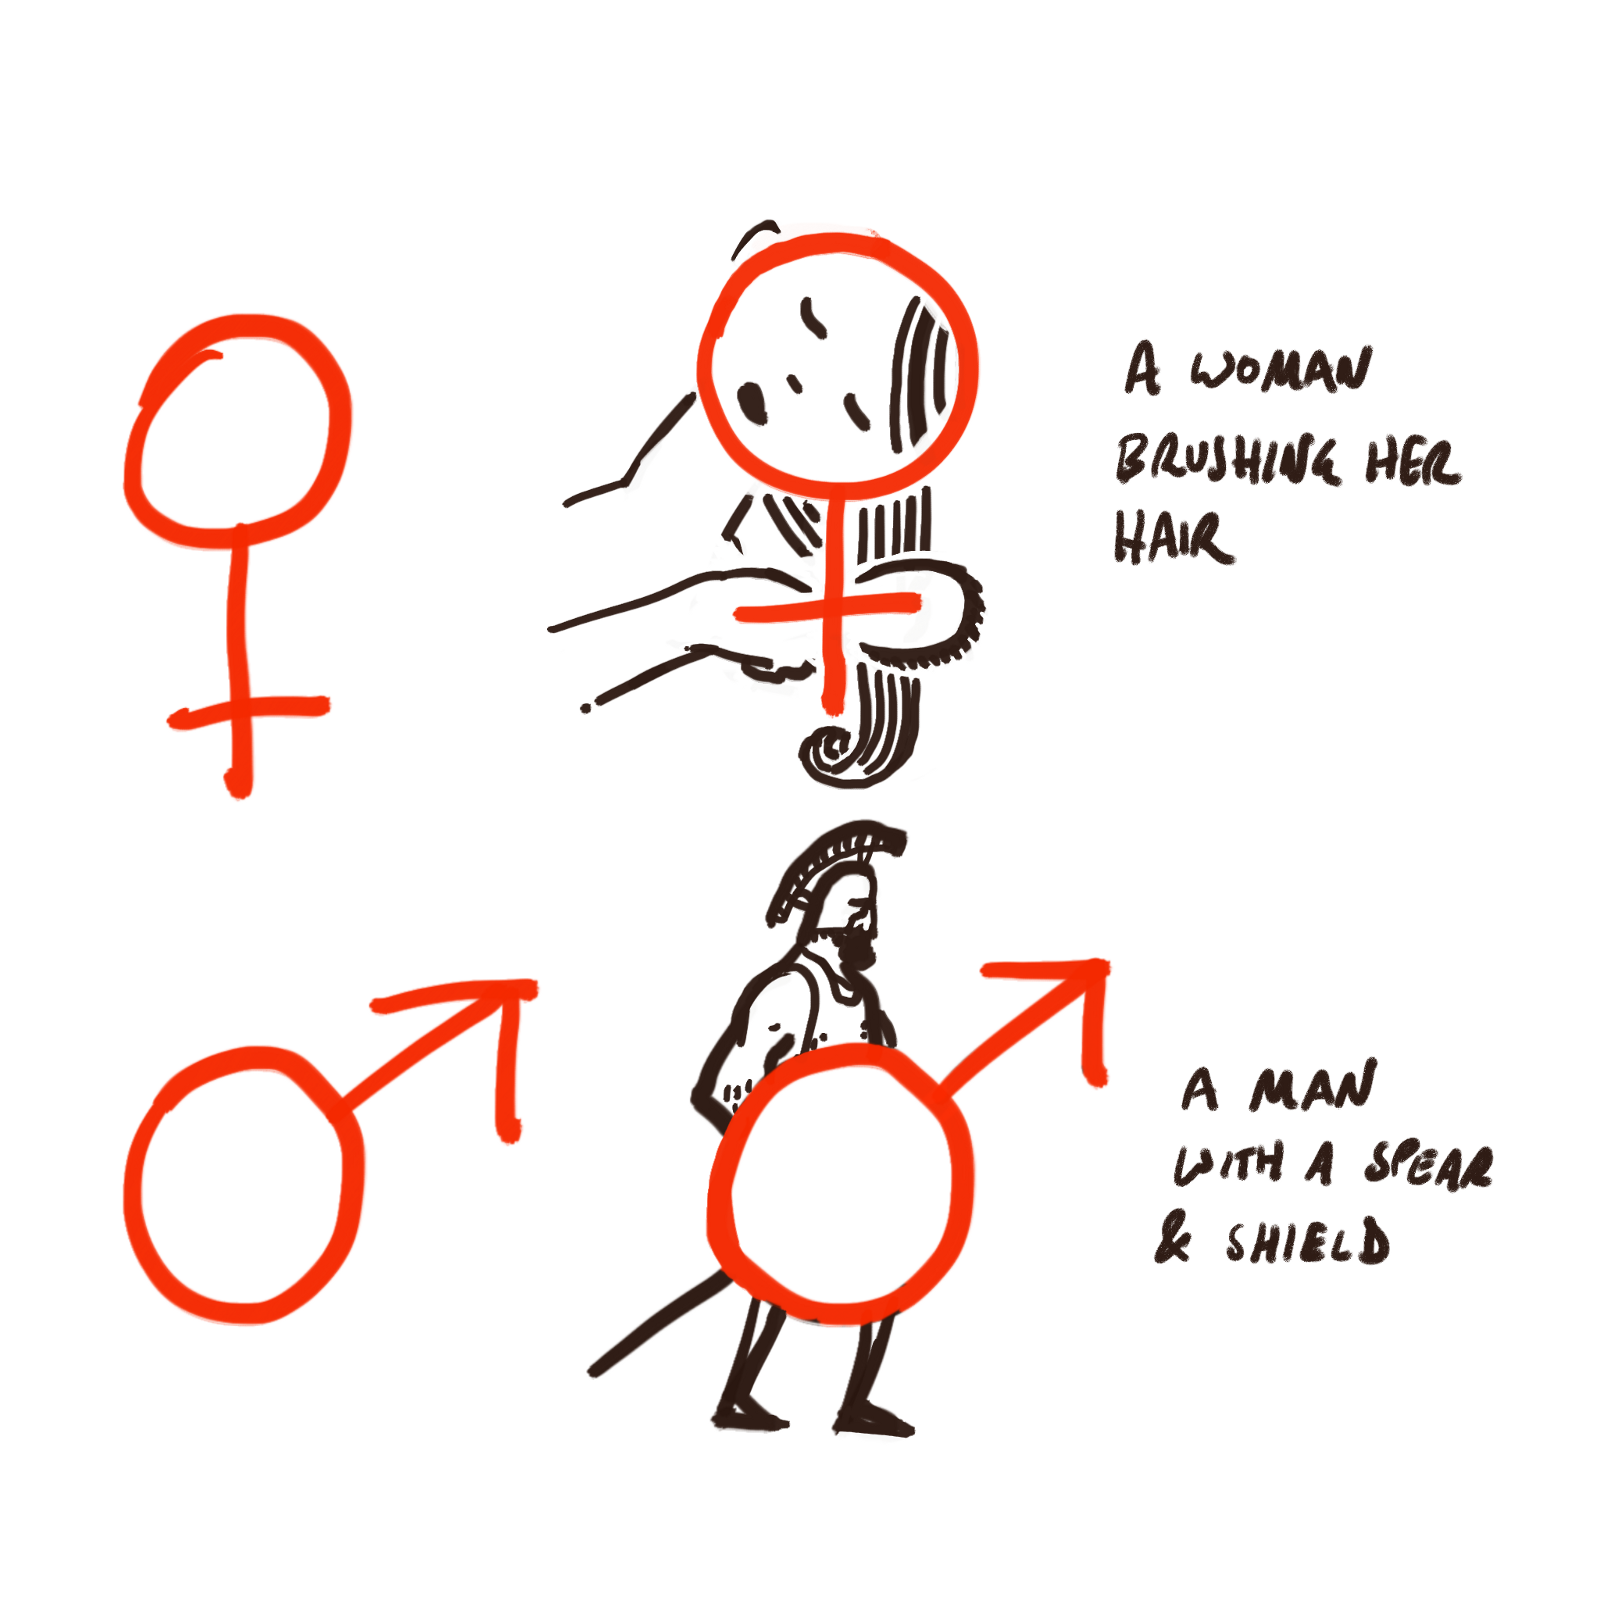 A Visual Mnemonic For Remembering The Male And Female Symbols